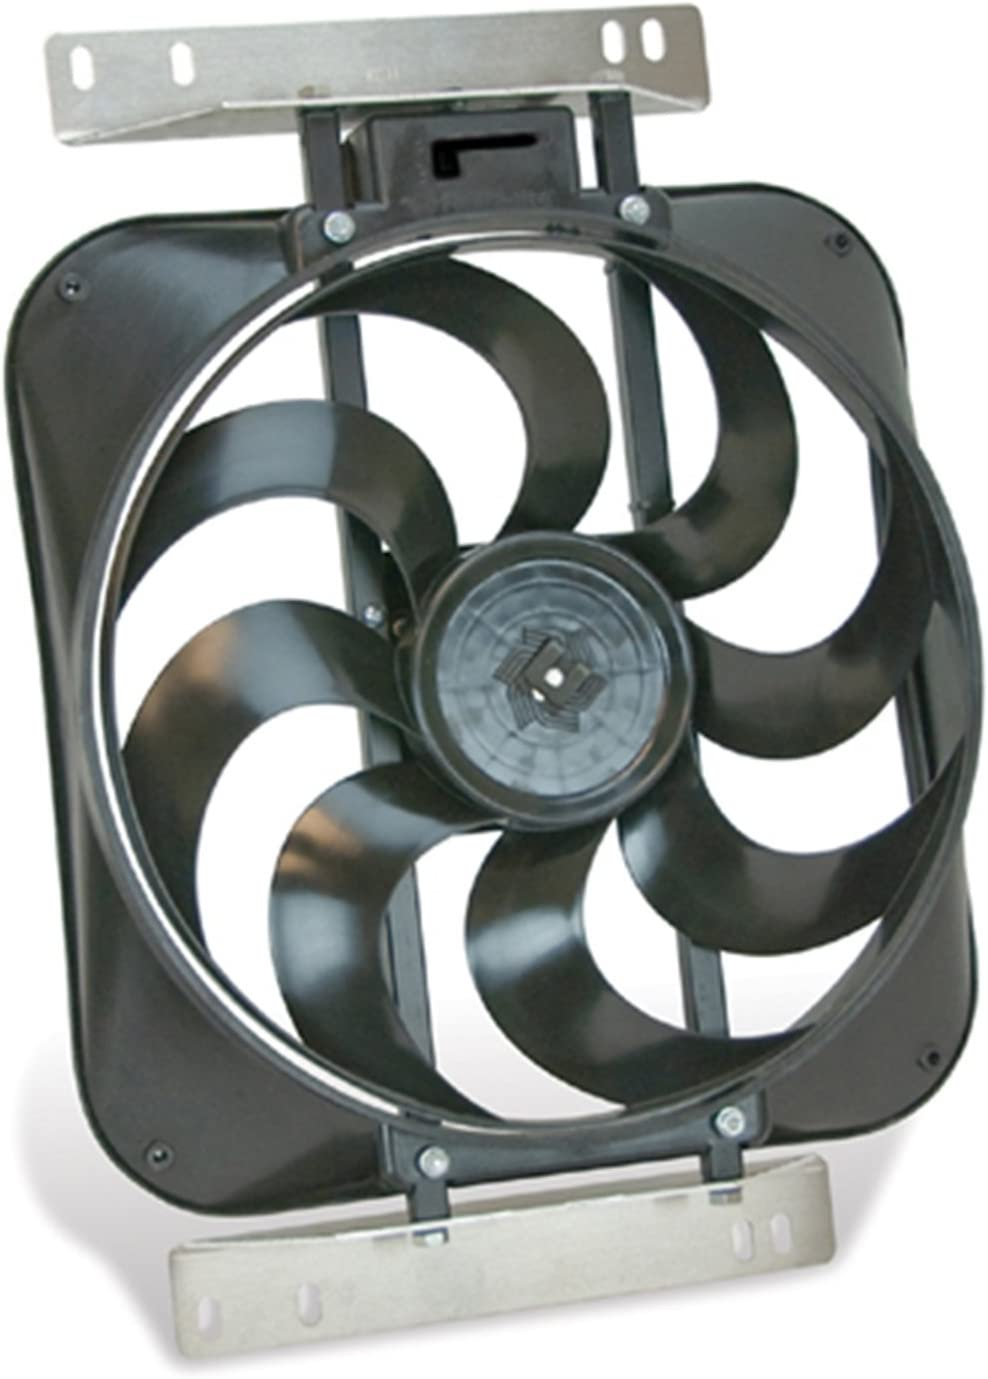 Flex-a-lite 684 S-blade Engine Cooling Fan